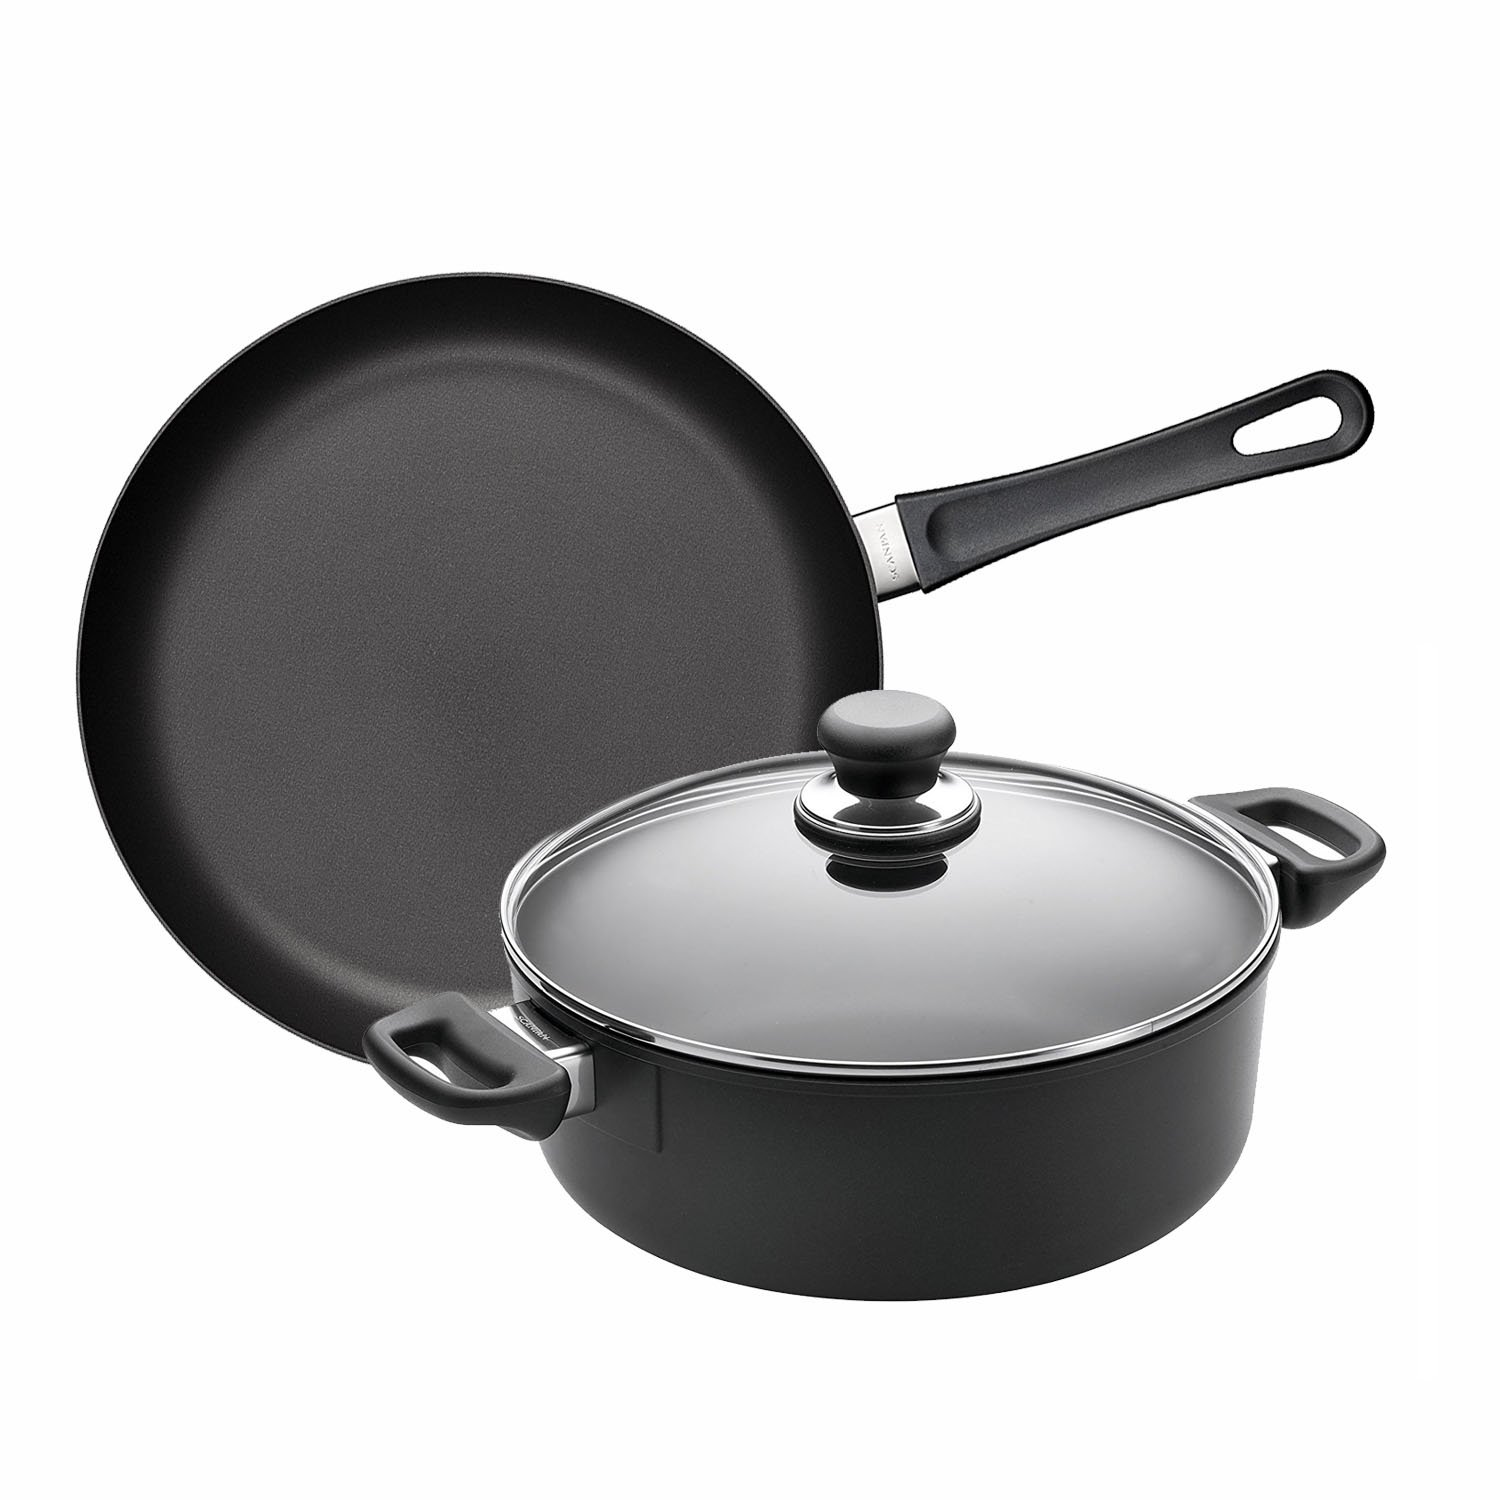 Scanpan Classic 3ピース調理器具セット、11インチFry Pan and 3- ¾ -quart Low Stew Pot with Lid   B079Z46C3K